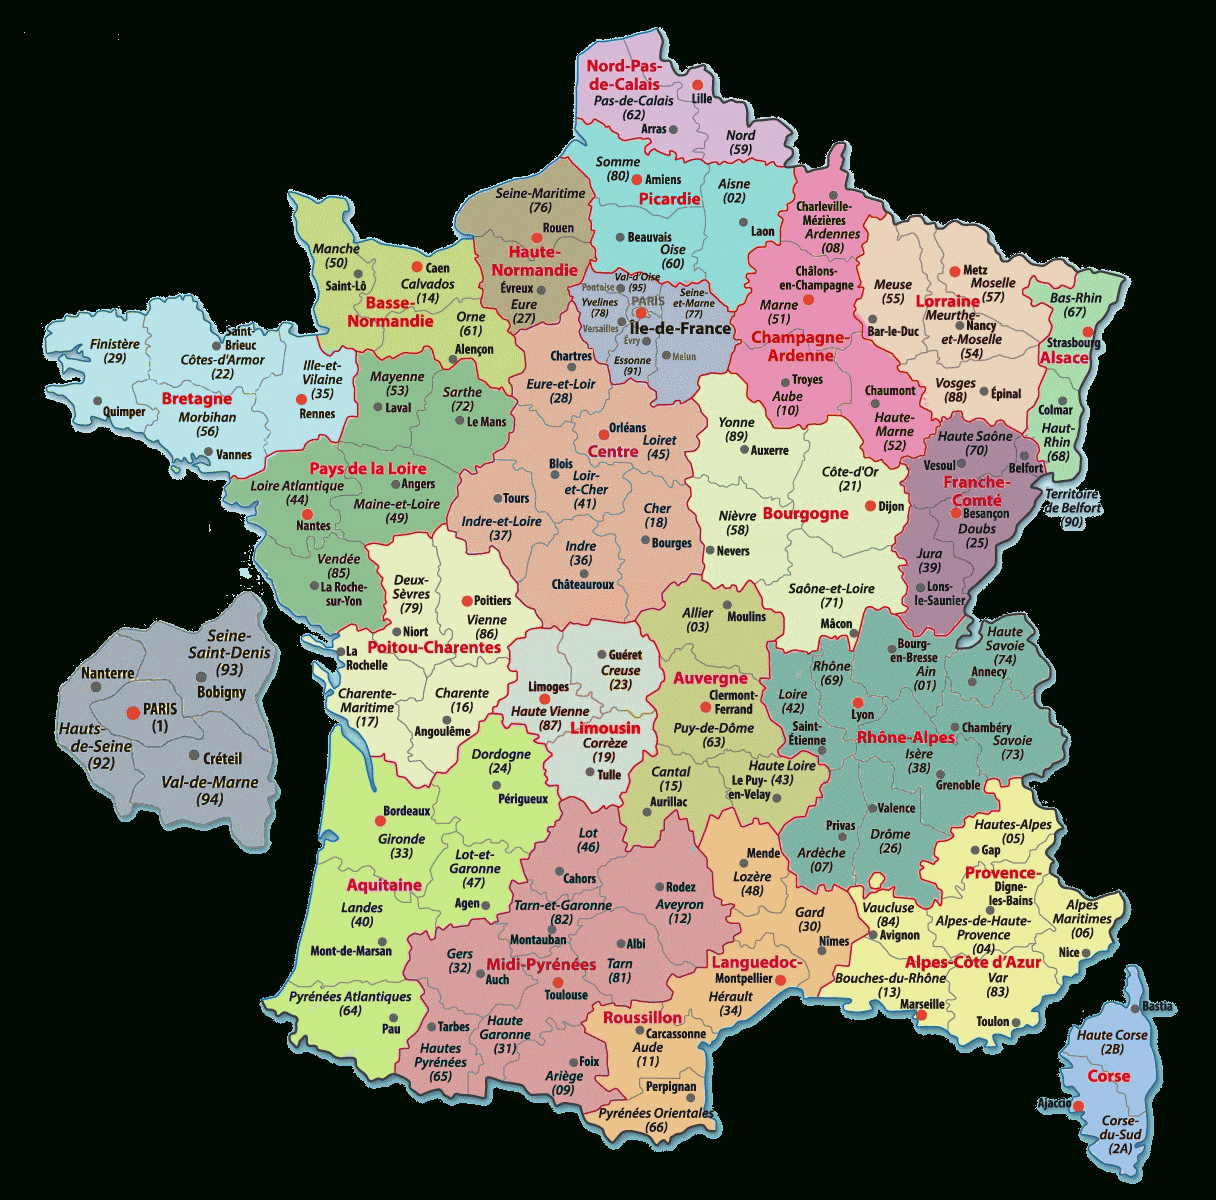 Carte De France Departements : Carte Des Départements De France concernant Carte De Departement A Imprimer